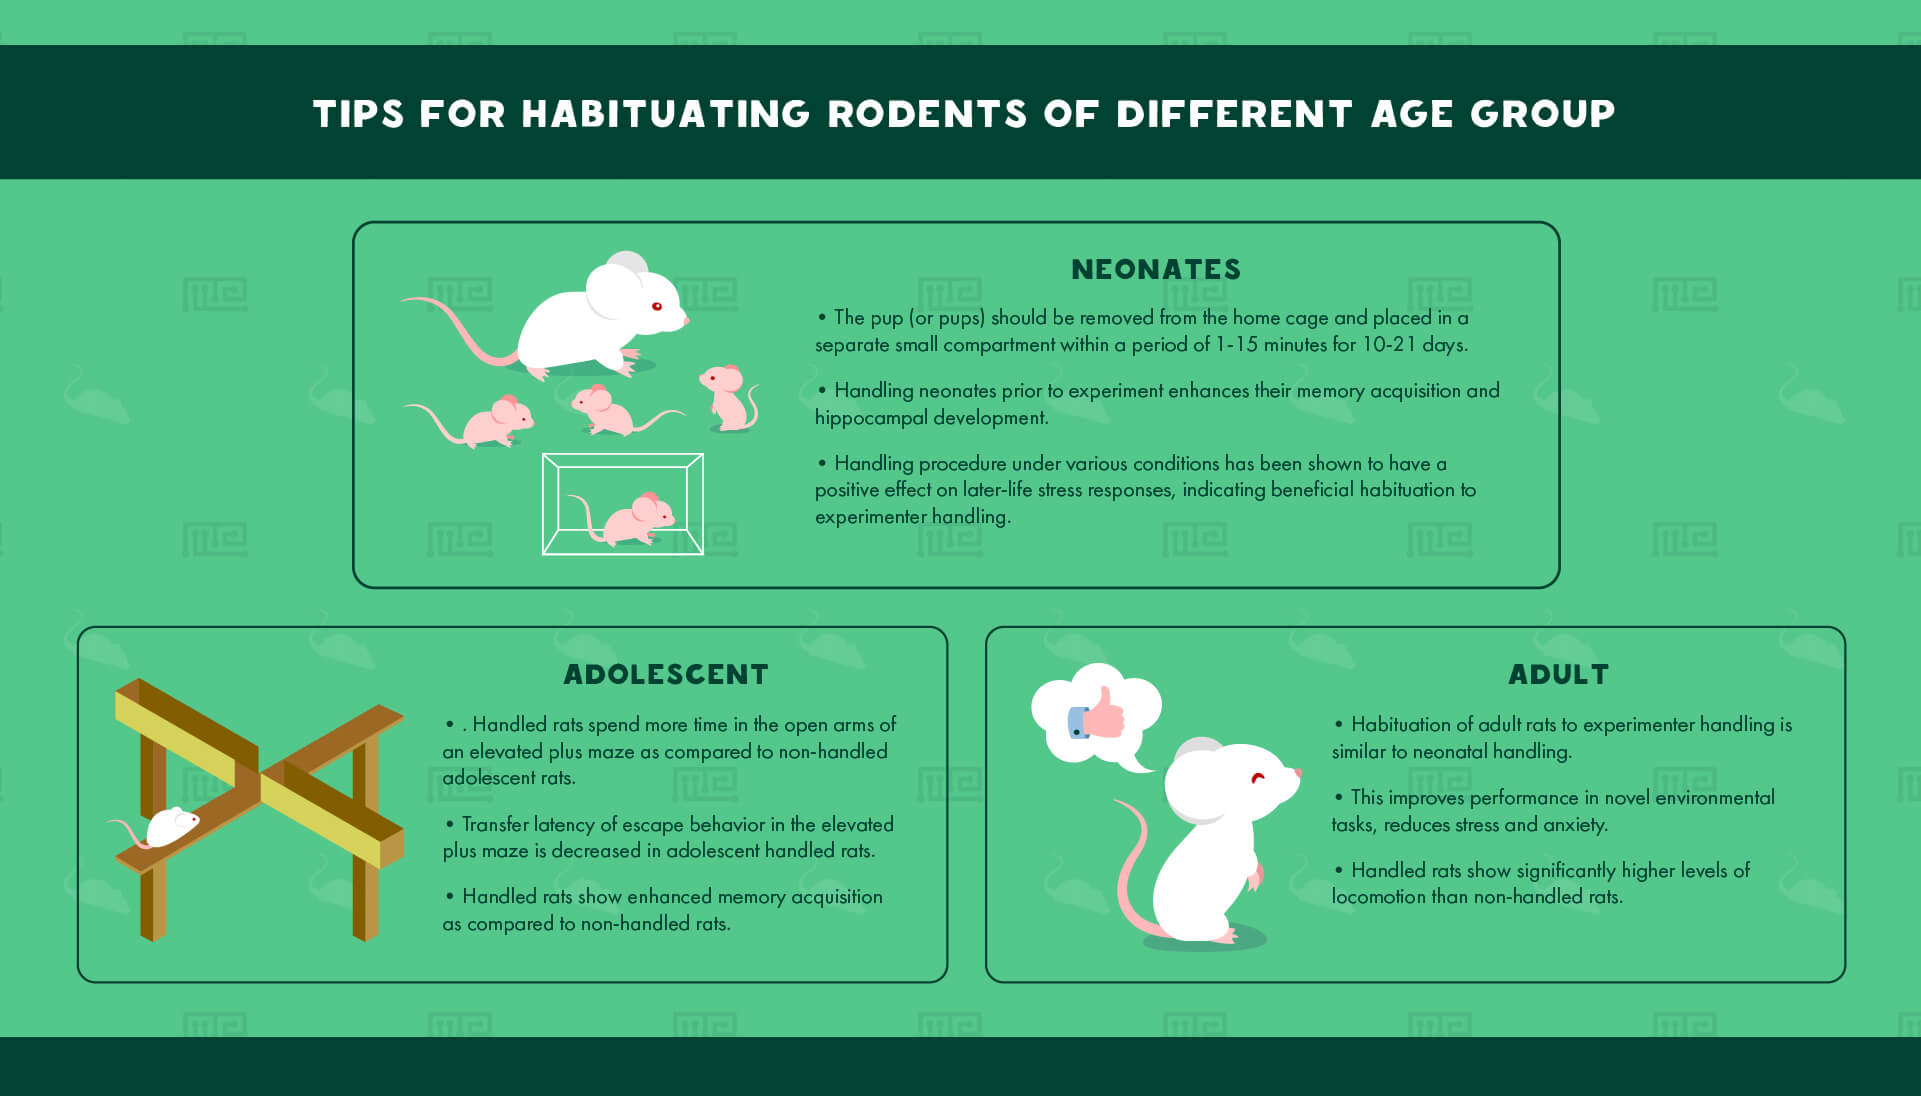 habituating rodents of different age group